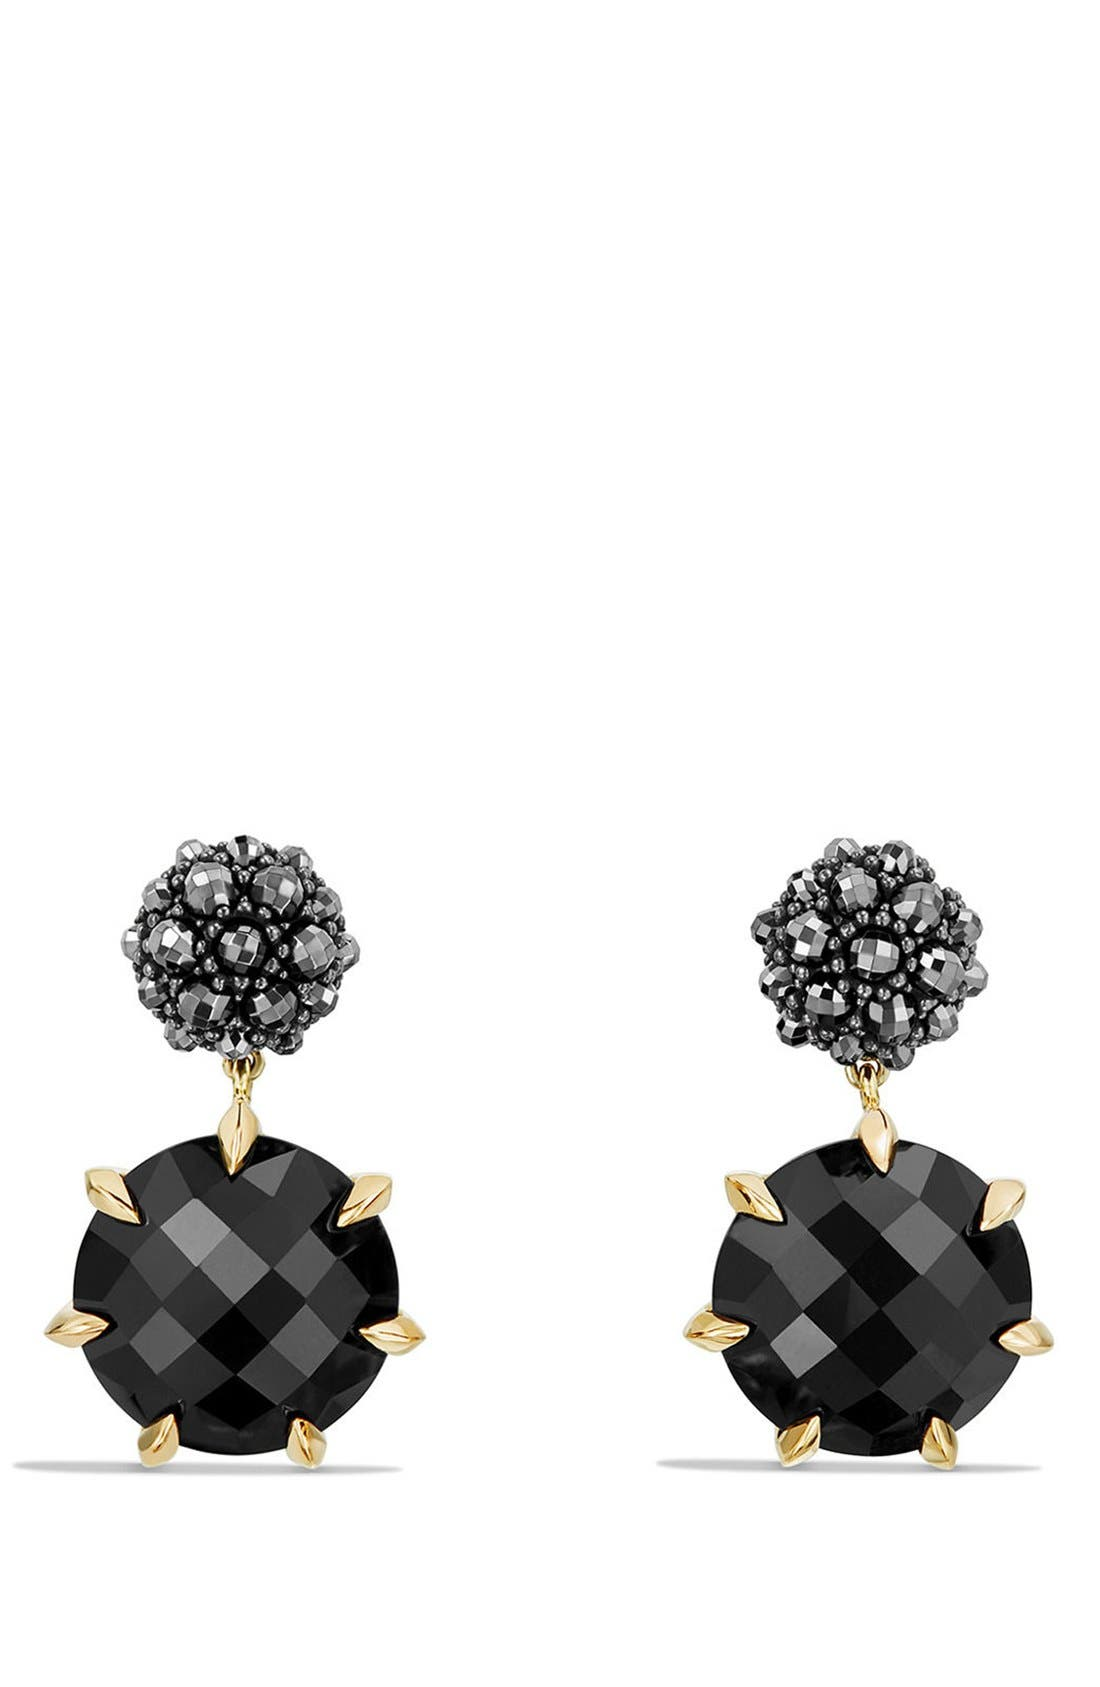 Osetra Drop Earrings with 18K Gold,                             Main thumbnail 1, color,                             Black Onyx/ Hematine